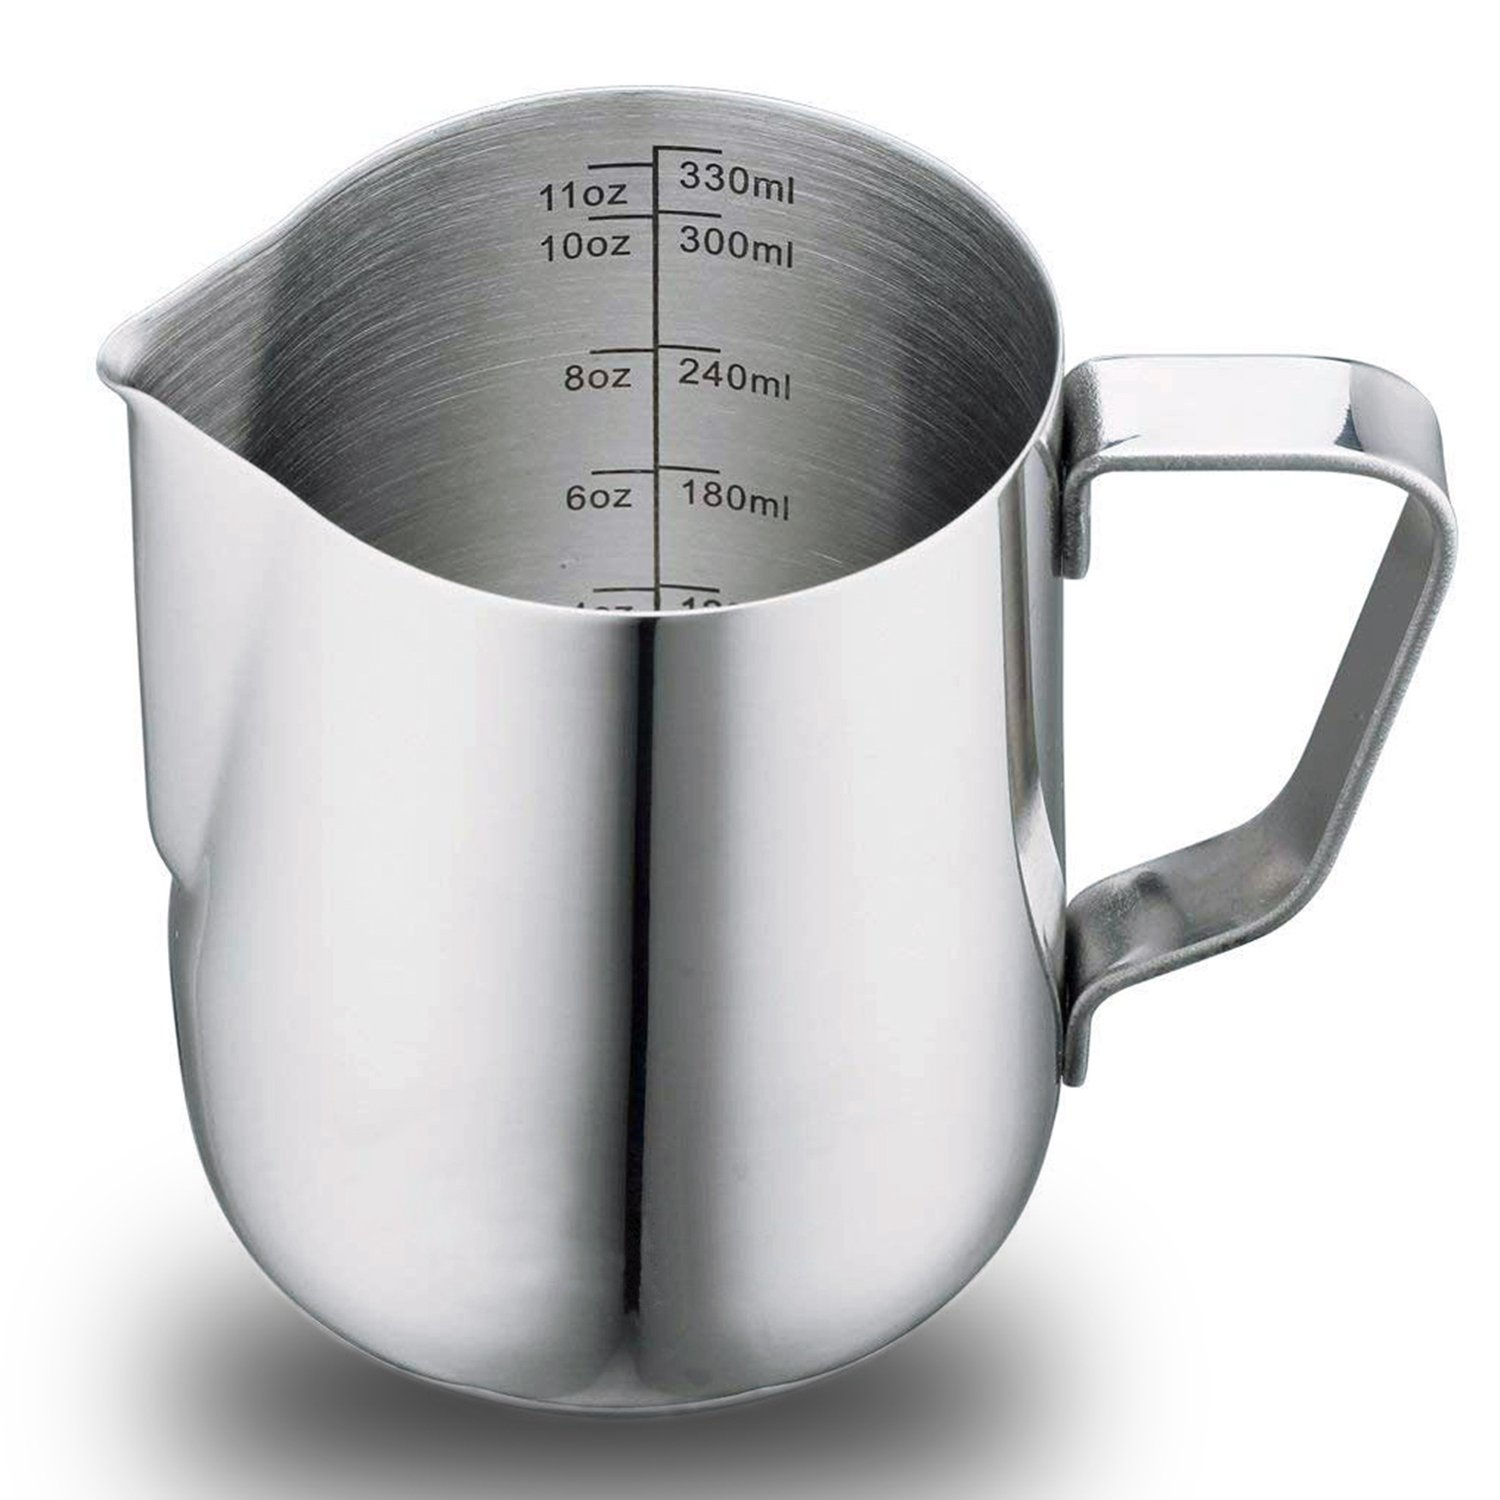 6 Oz Stainless Steel Milk Frothing Pitcher Cup, Measuring Scales for Espresso Cappuccino Milk Coffee Latte (350ml 1 Pack)